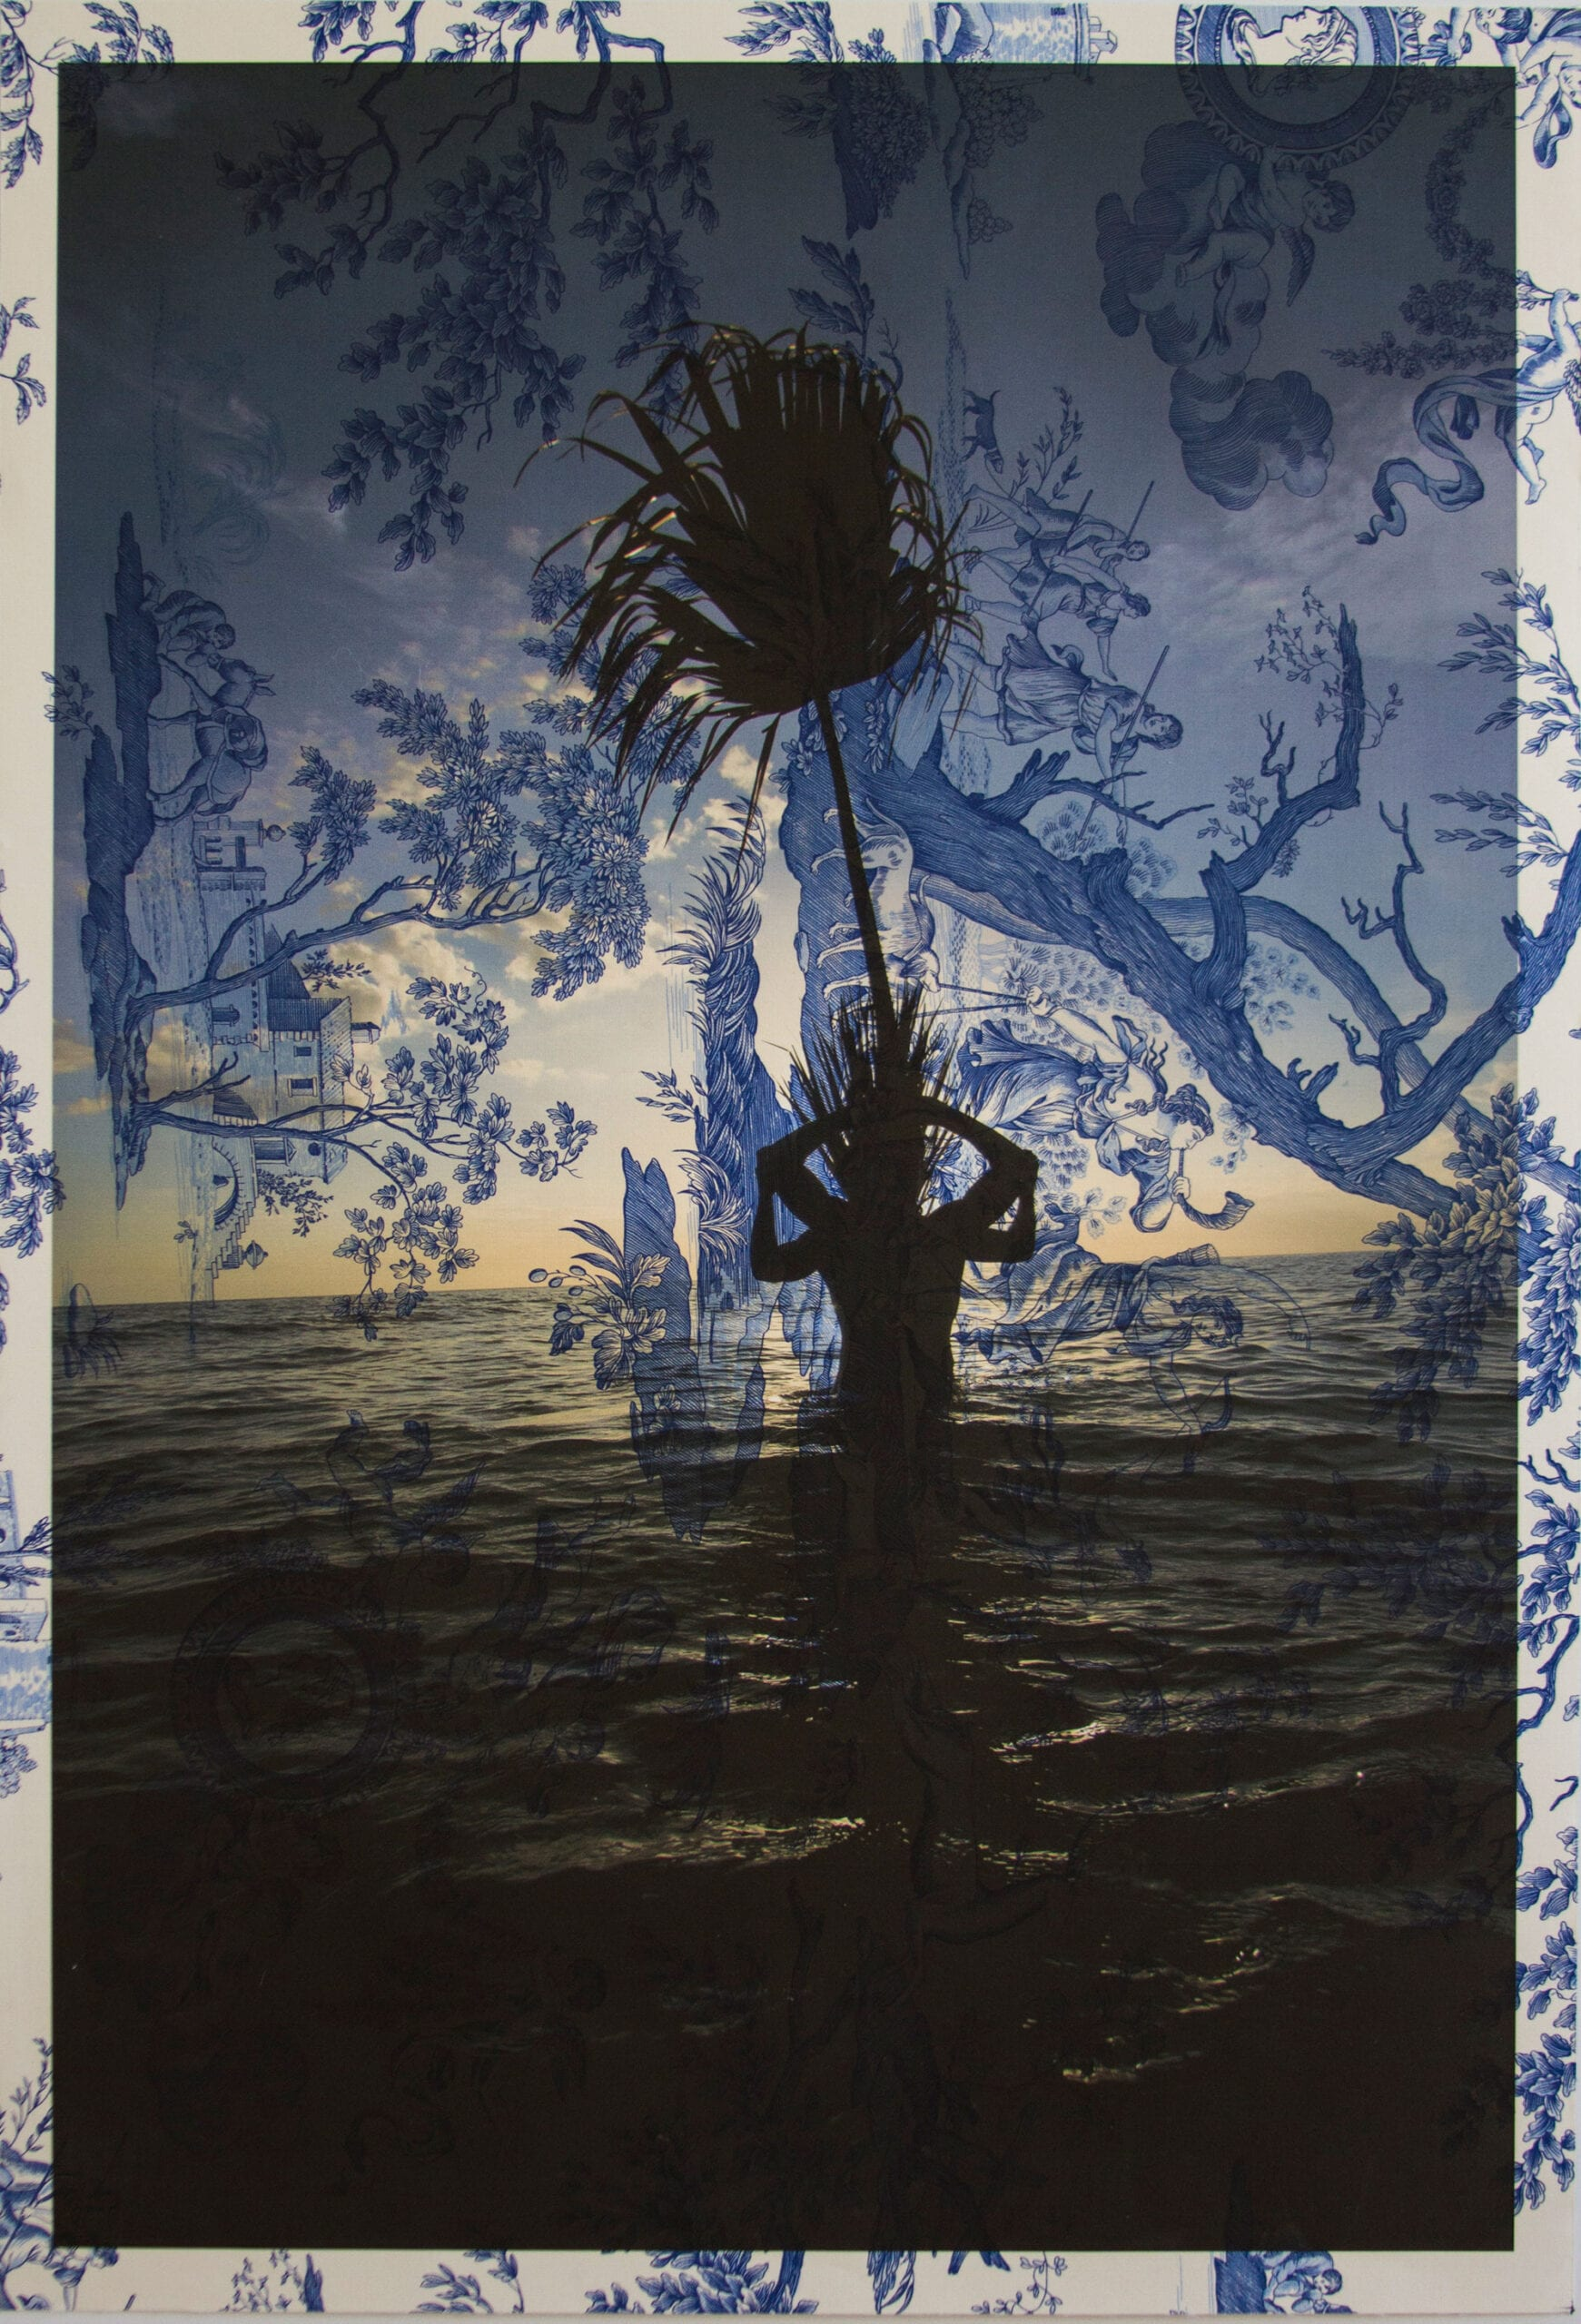 "Tim Hailand, Arnaud Cizergues and Damien Jalet Gulf of Mexico sunset (on blue mythical toile), digital pigment print on patterned toile de Jouy fabric, 38"" x 26"", unique print, 2013"